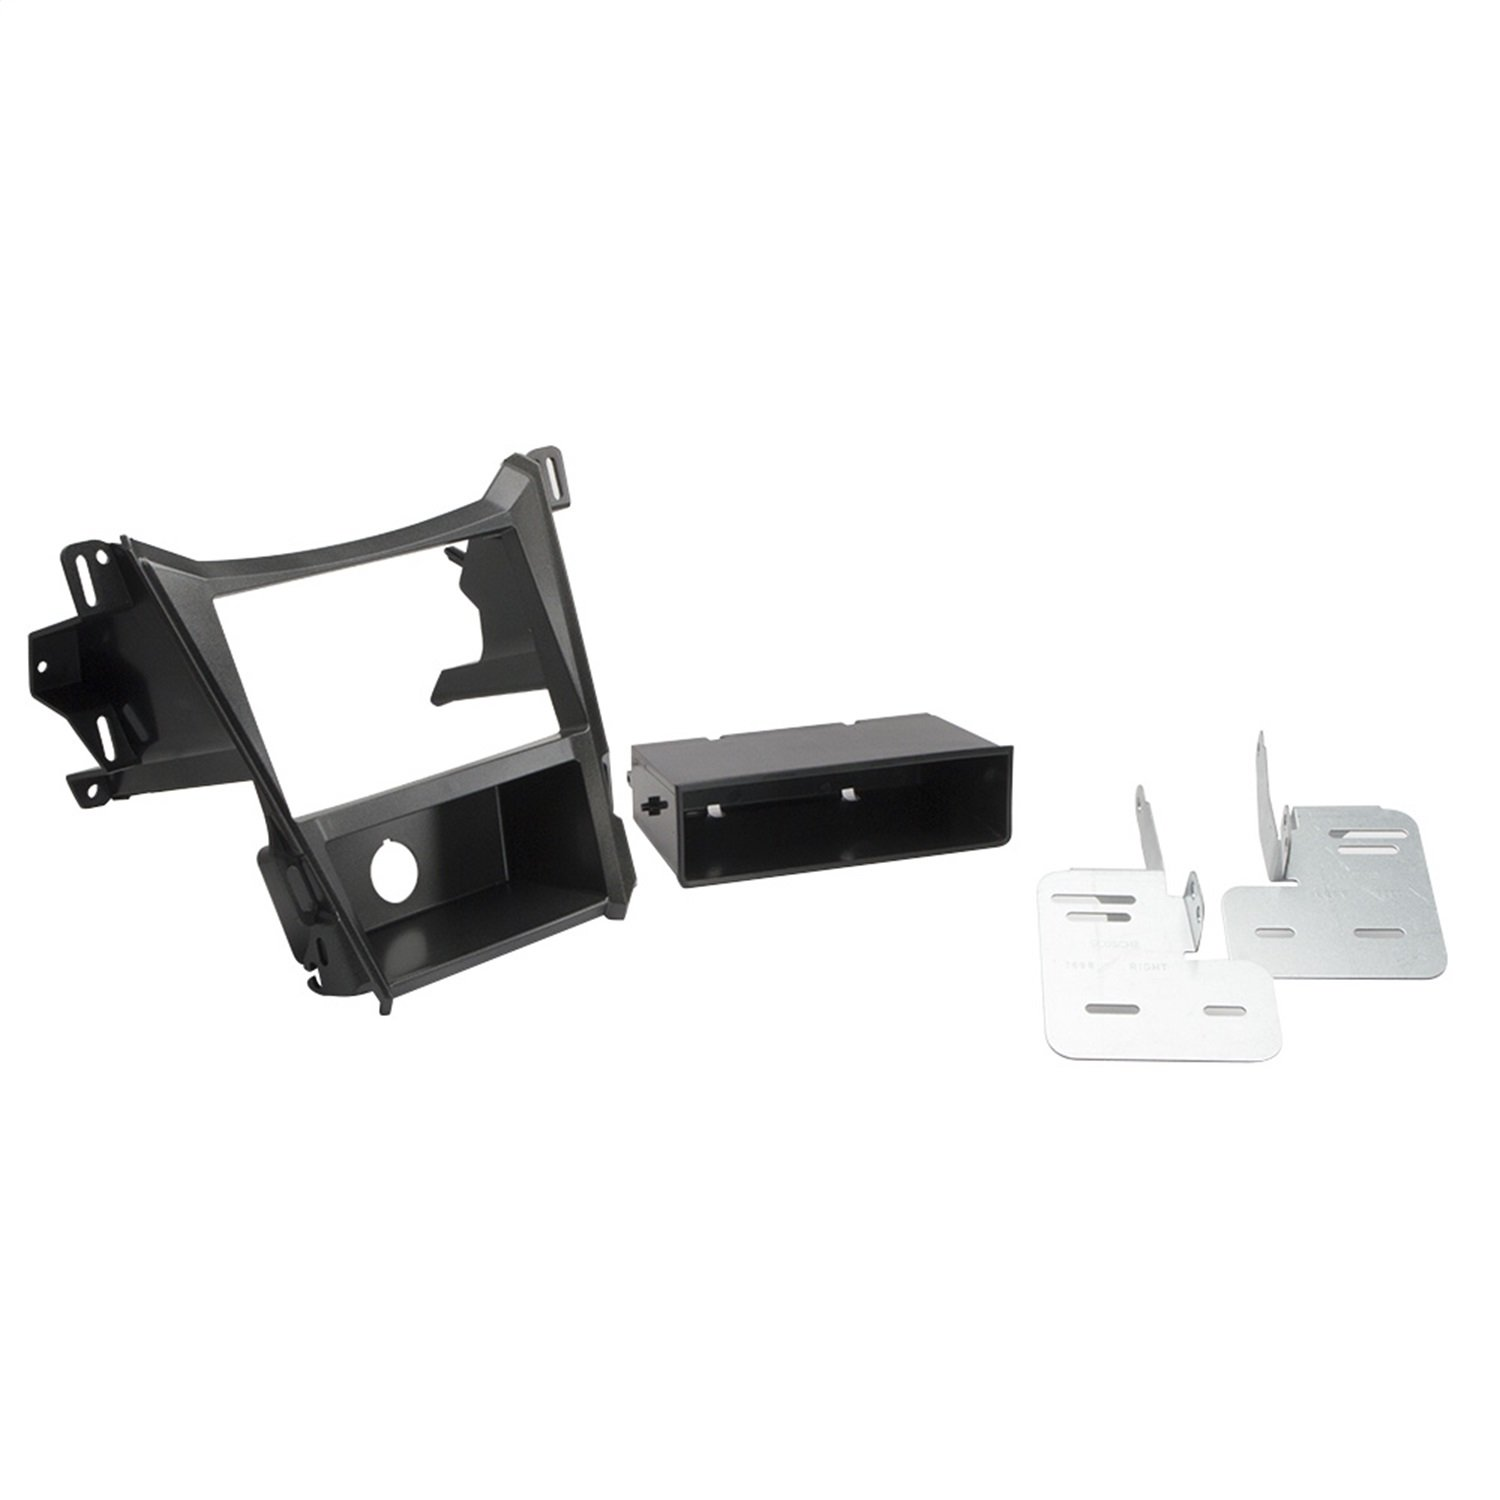 SCOSCHE GM5216B 2010-Up Chevrolet Equinox/GMC Terrain Double DIN & DIN with Pocket Kit by Scosche